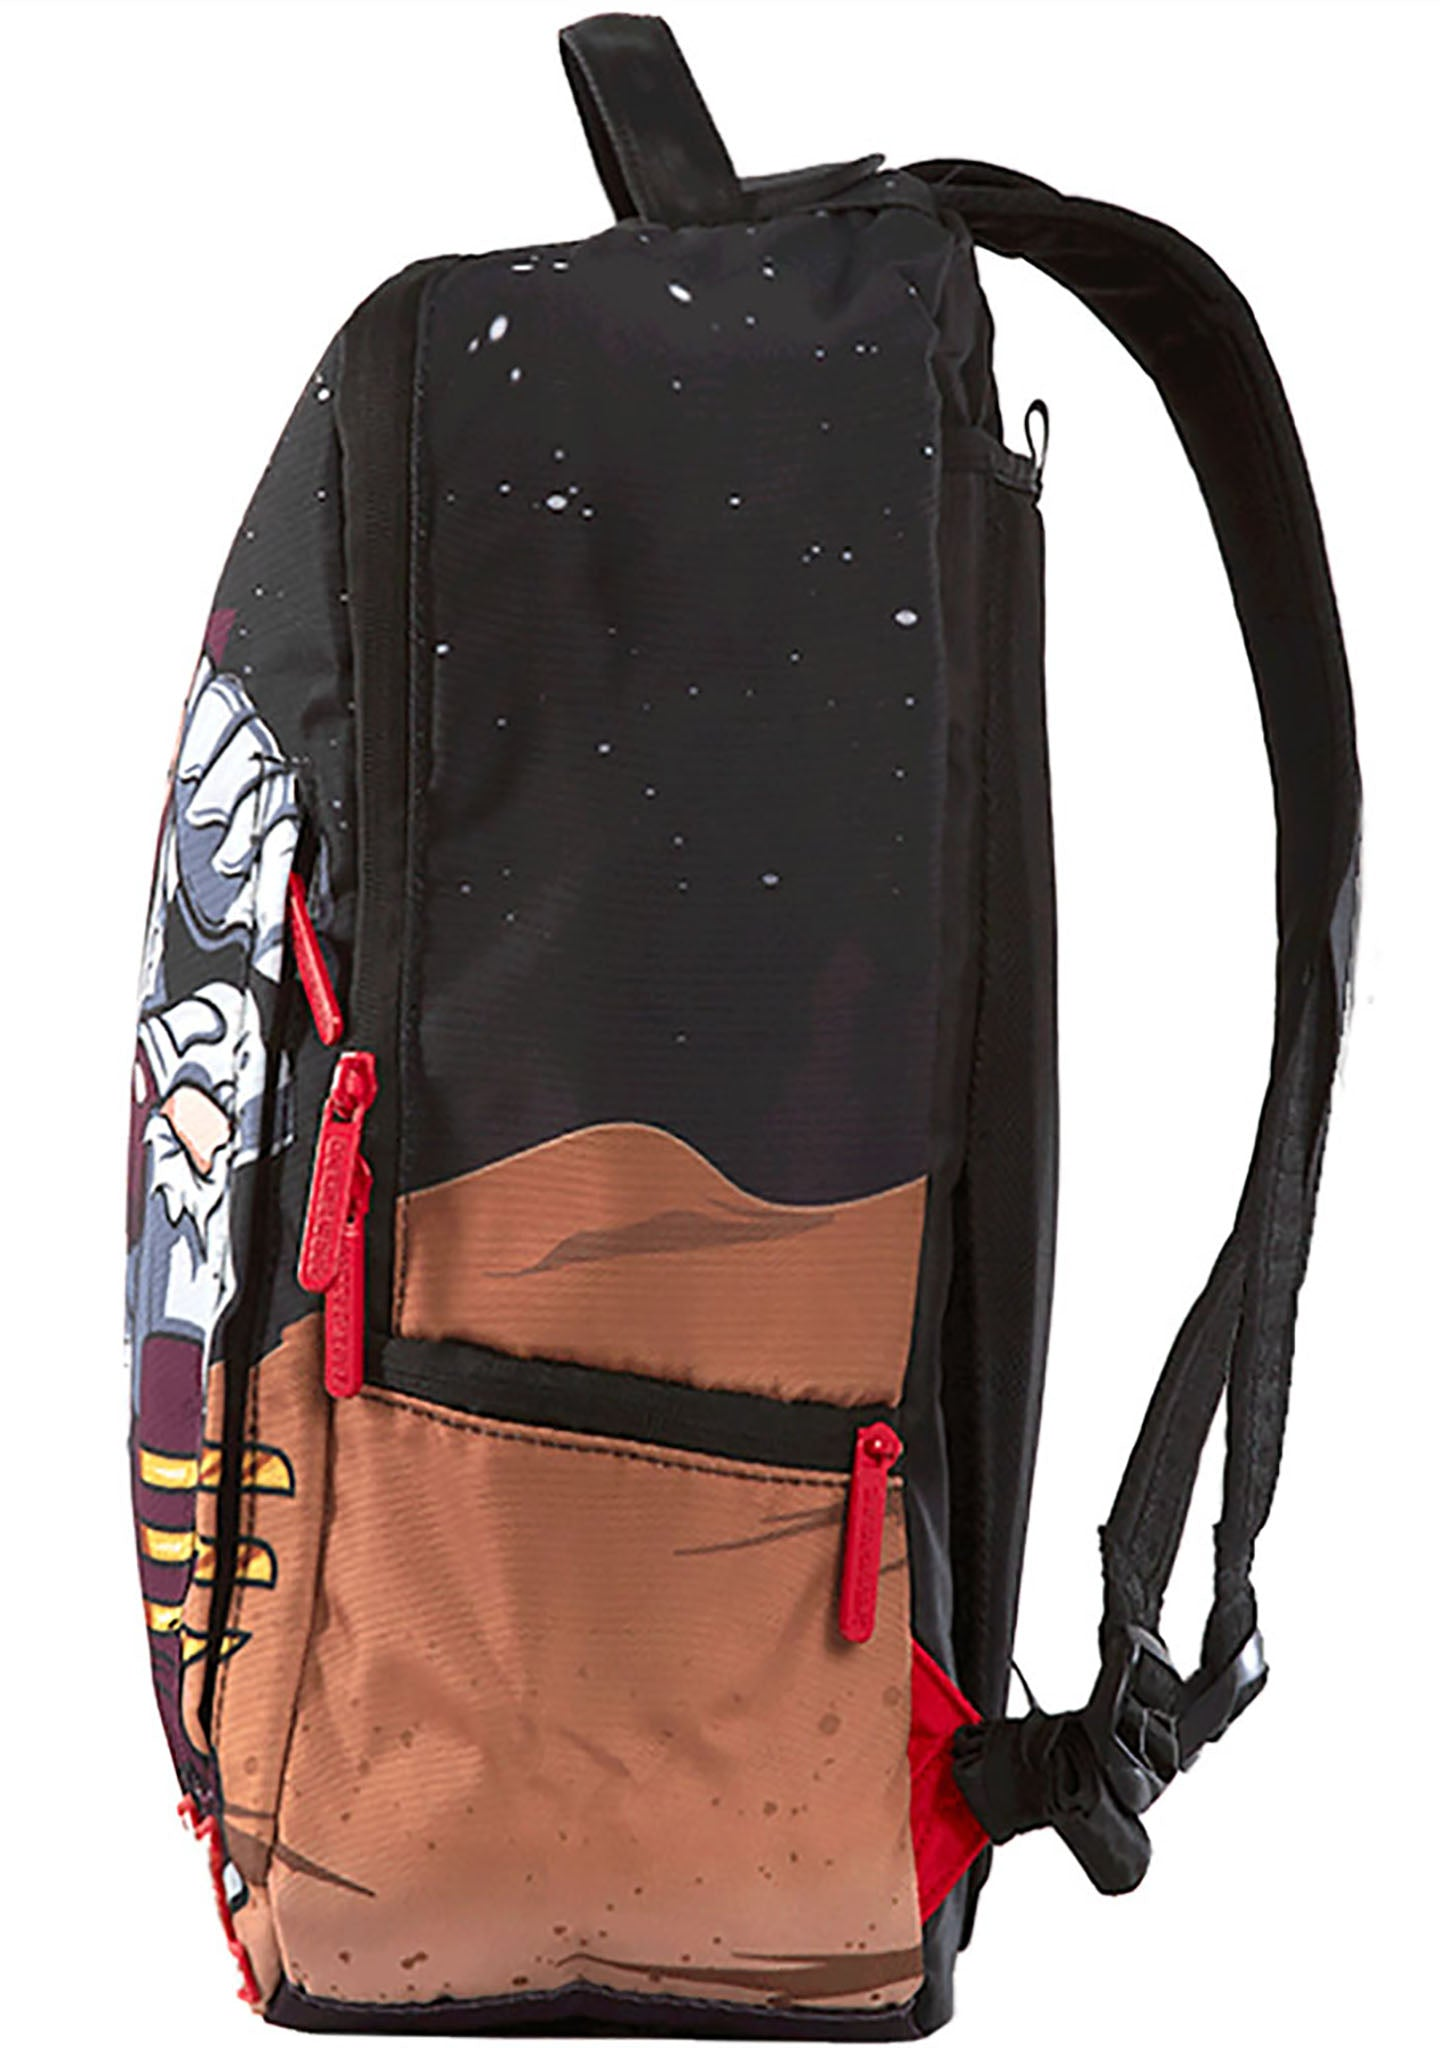 Sprayground Peter Fashion Killa Backpack - men's Backpack in Free Shipping Great Deals apTFhqjk